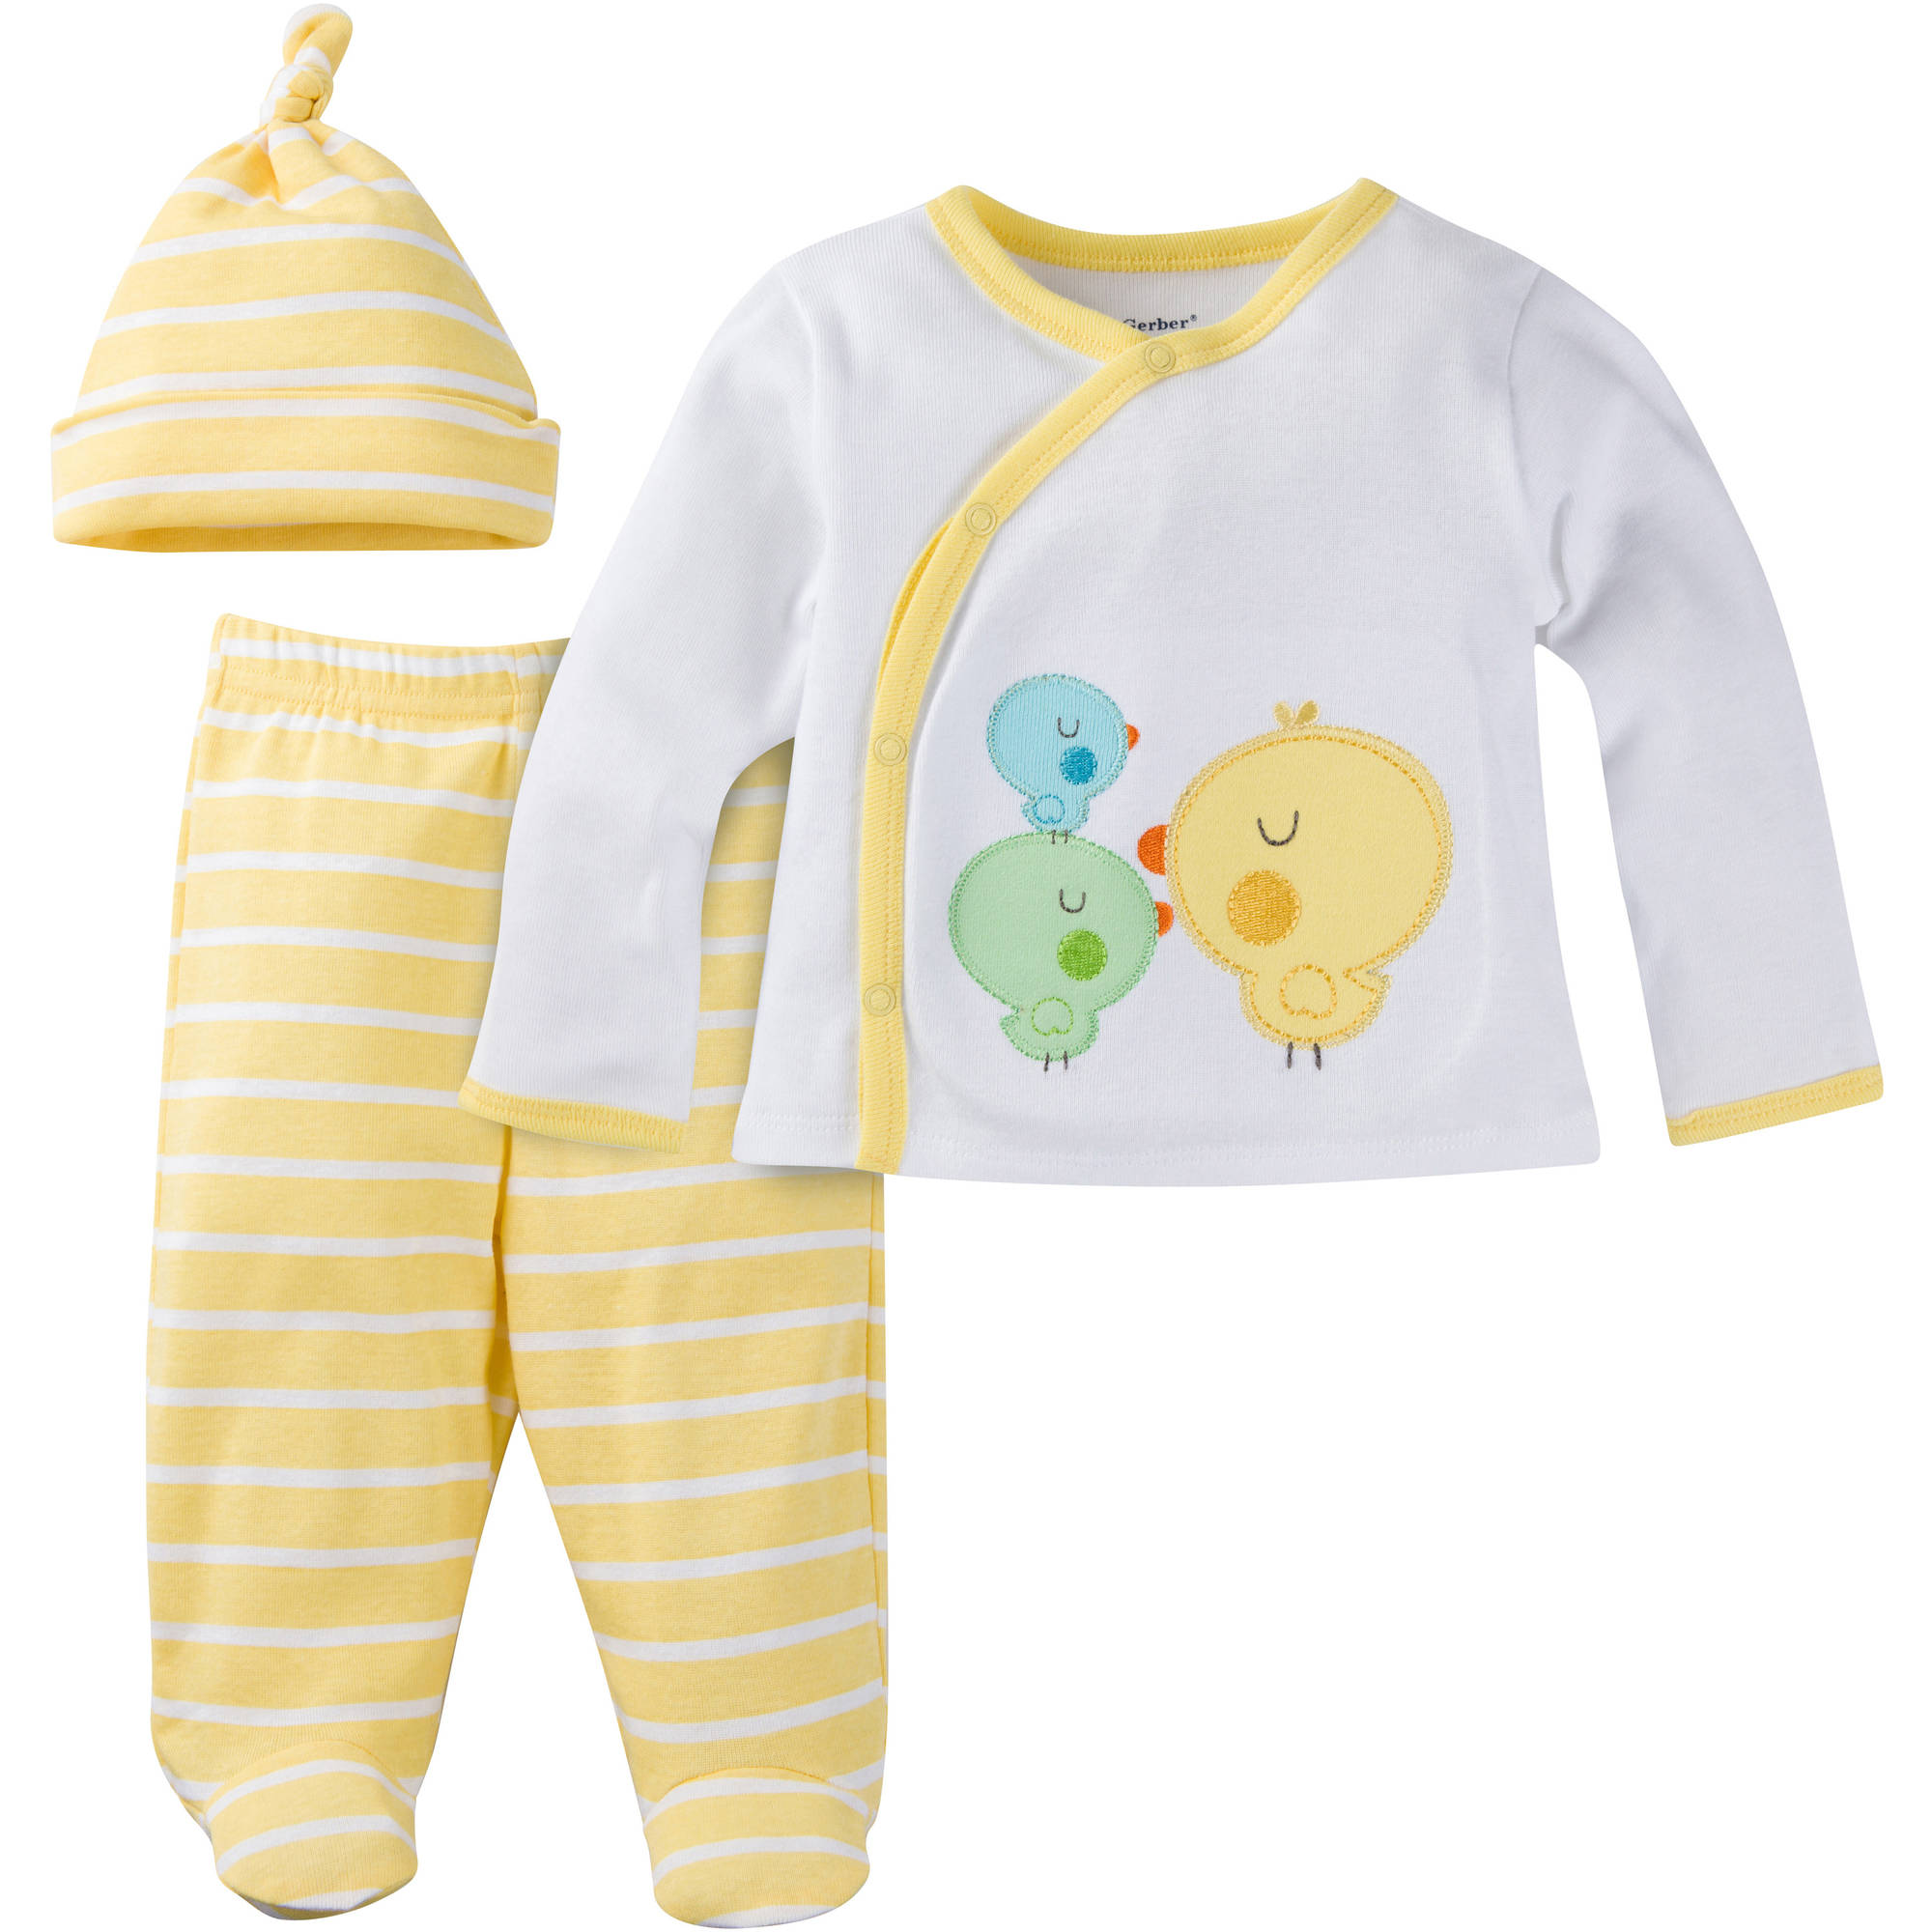 Gerber Newborn Baby Boy or Girl Unisex Take-Me-Home 3-Piece Layette Gift Set